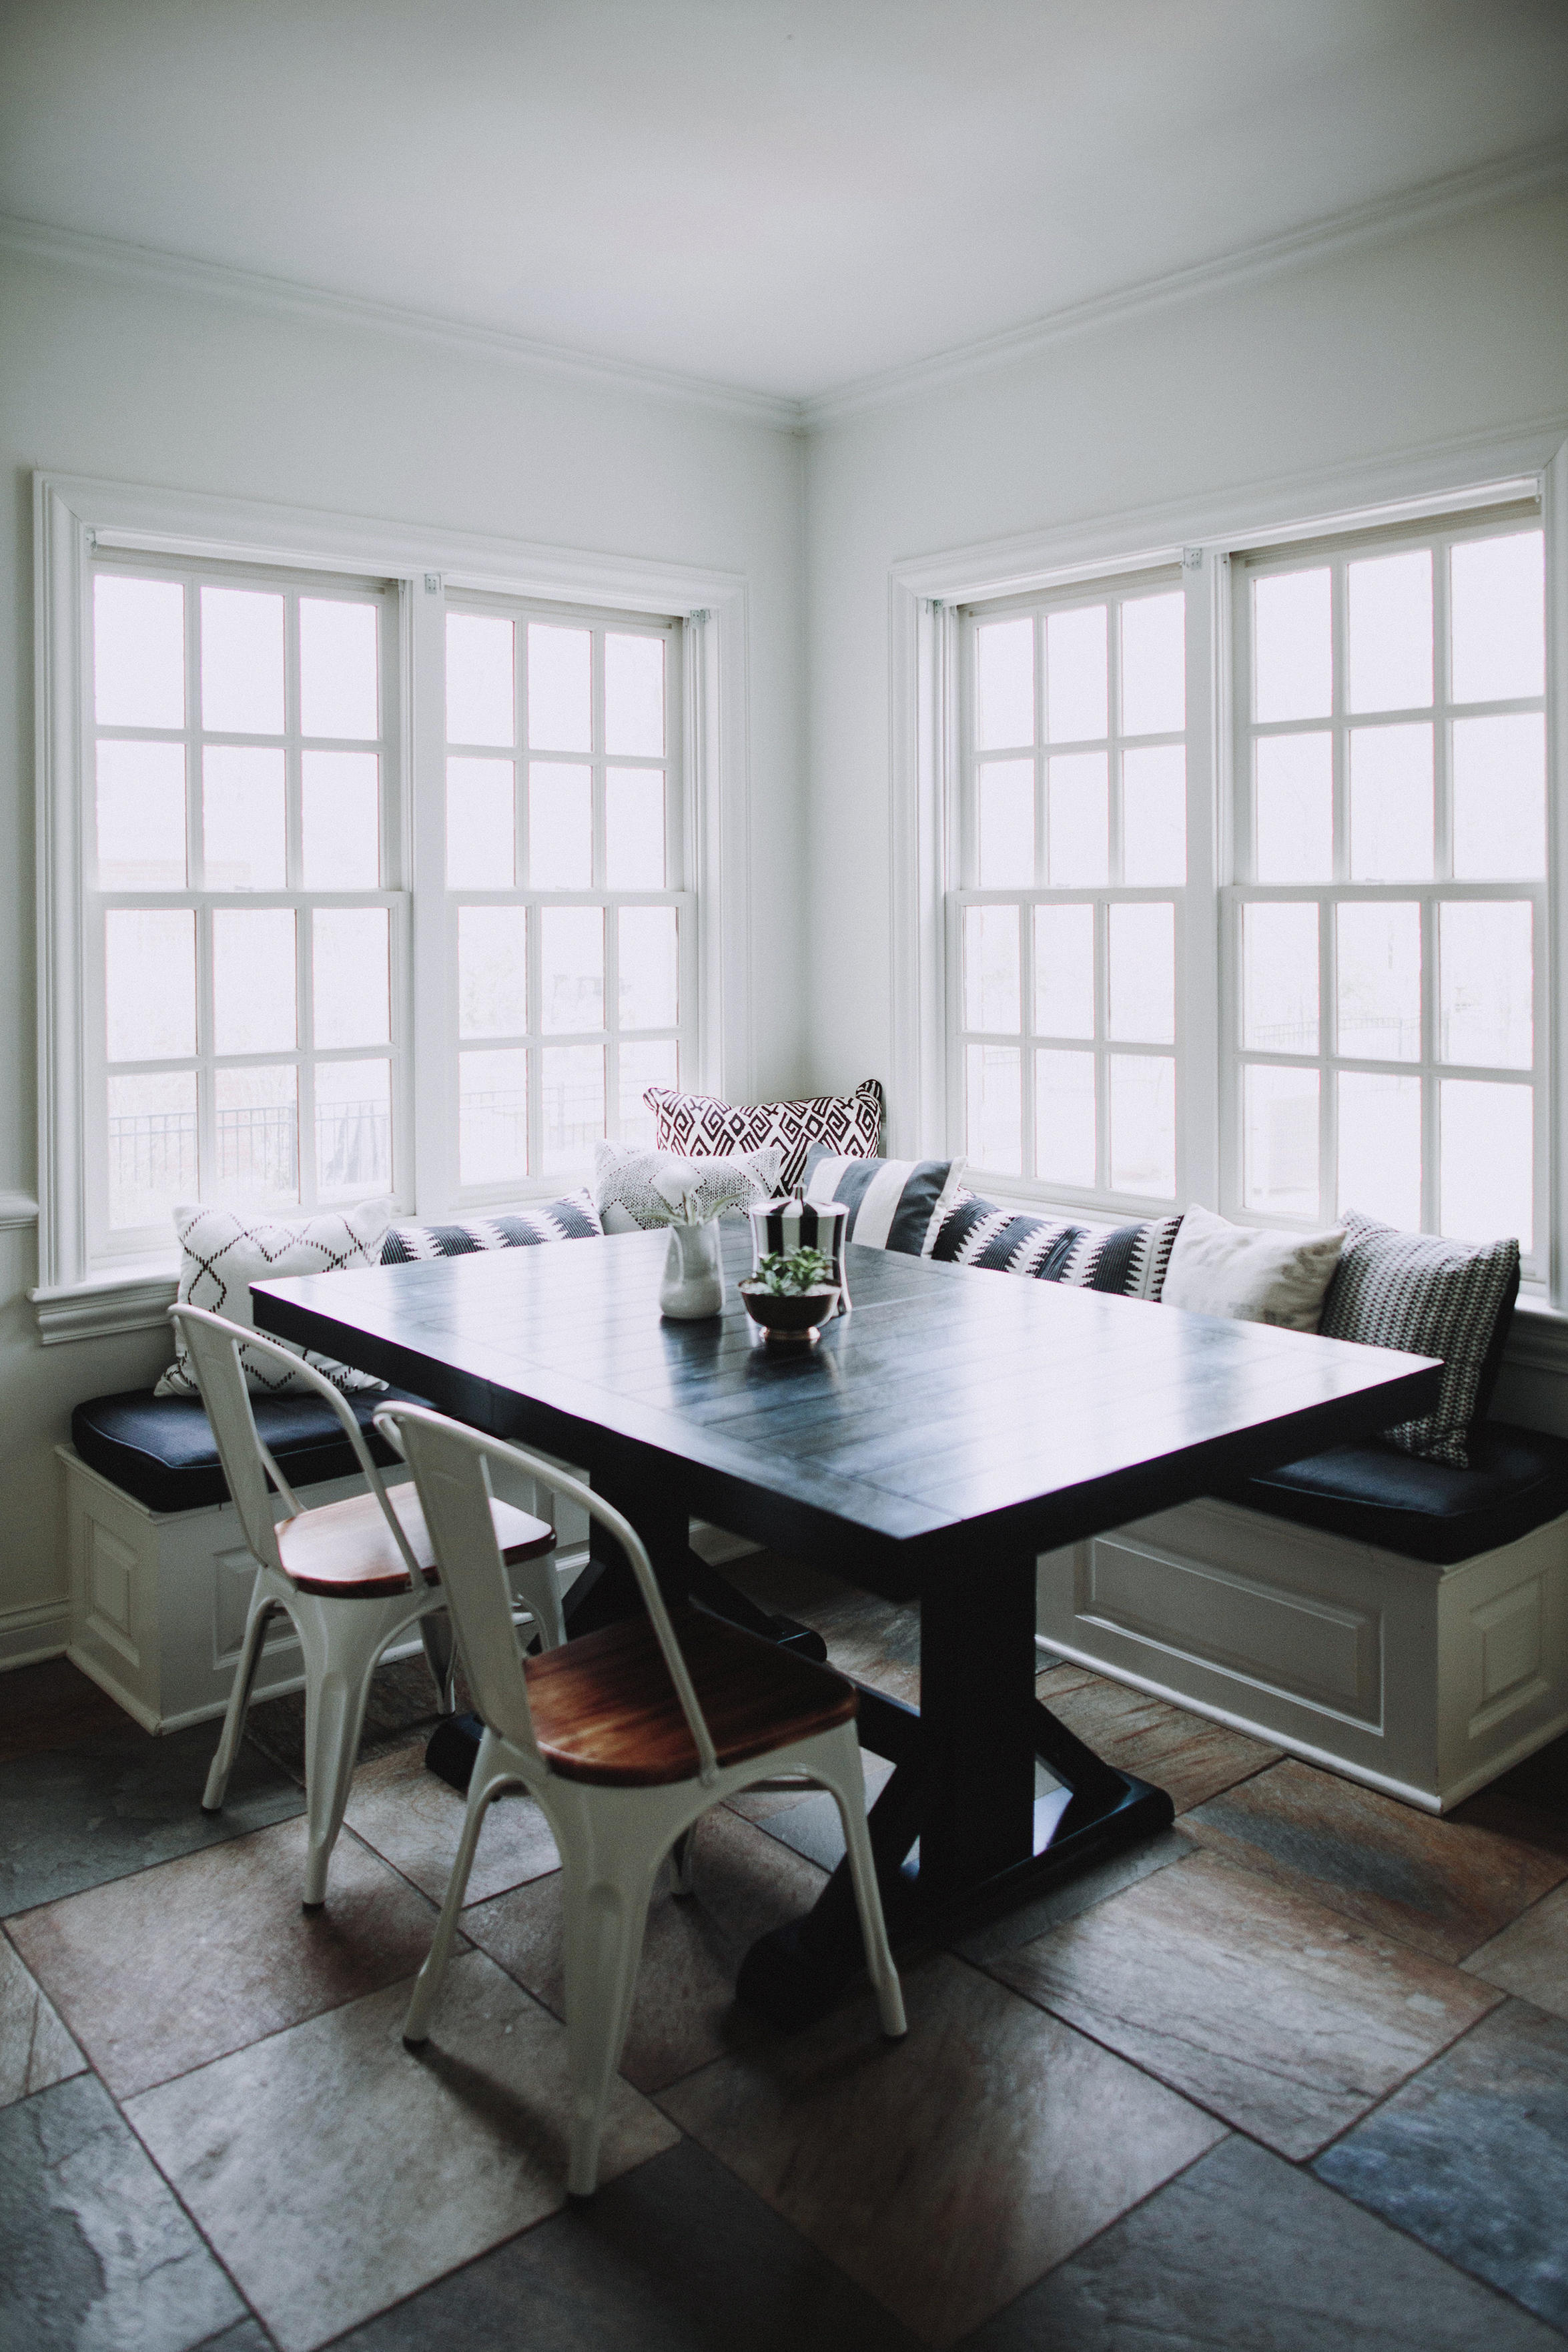 SPACES BY STEINITZ Neutral Family Home Breakfast Nook